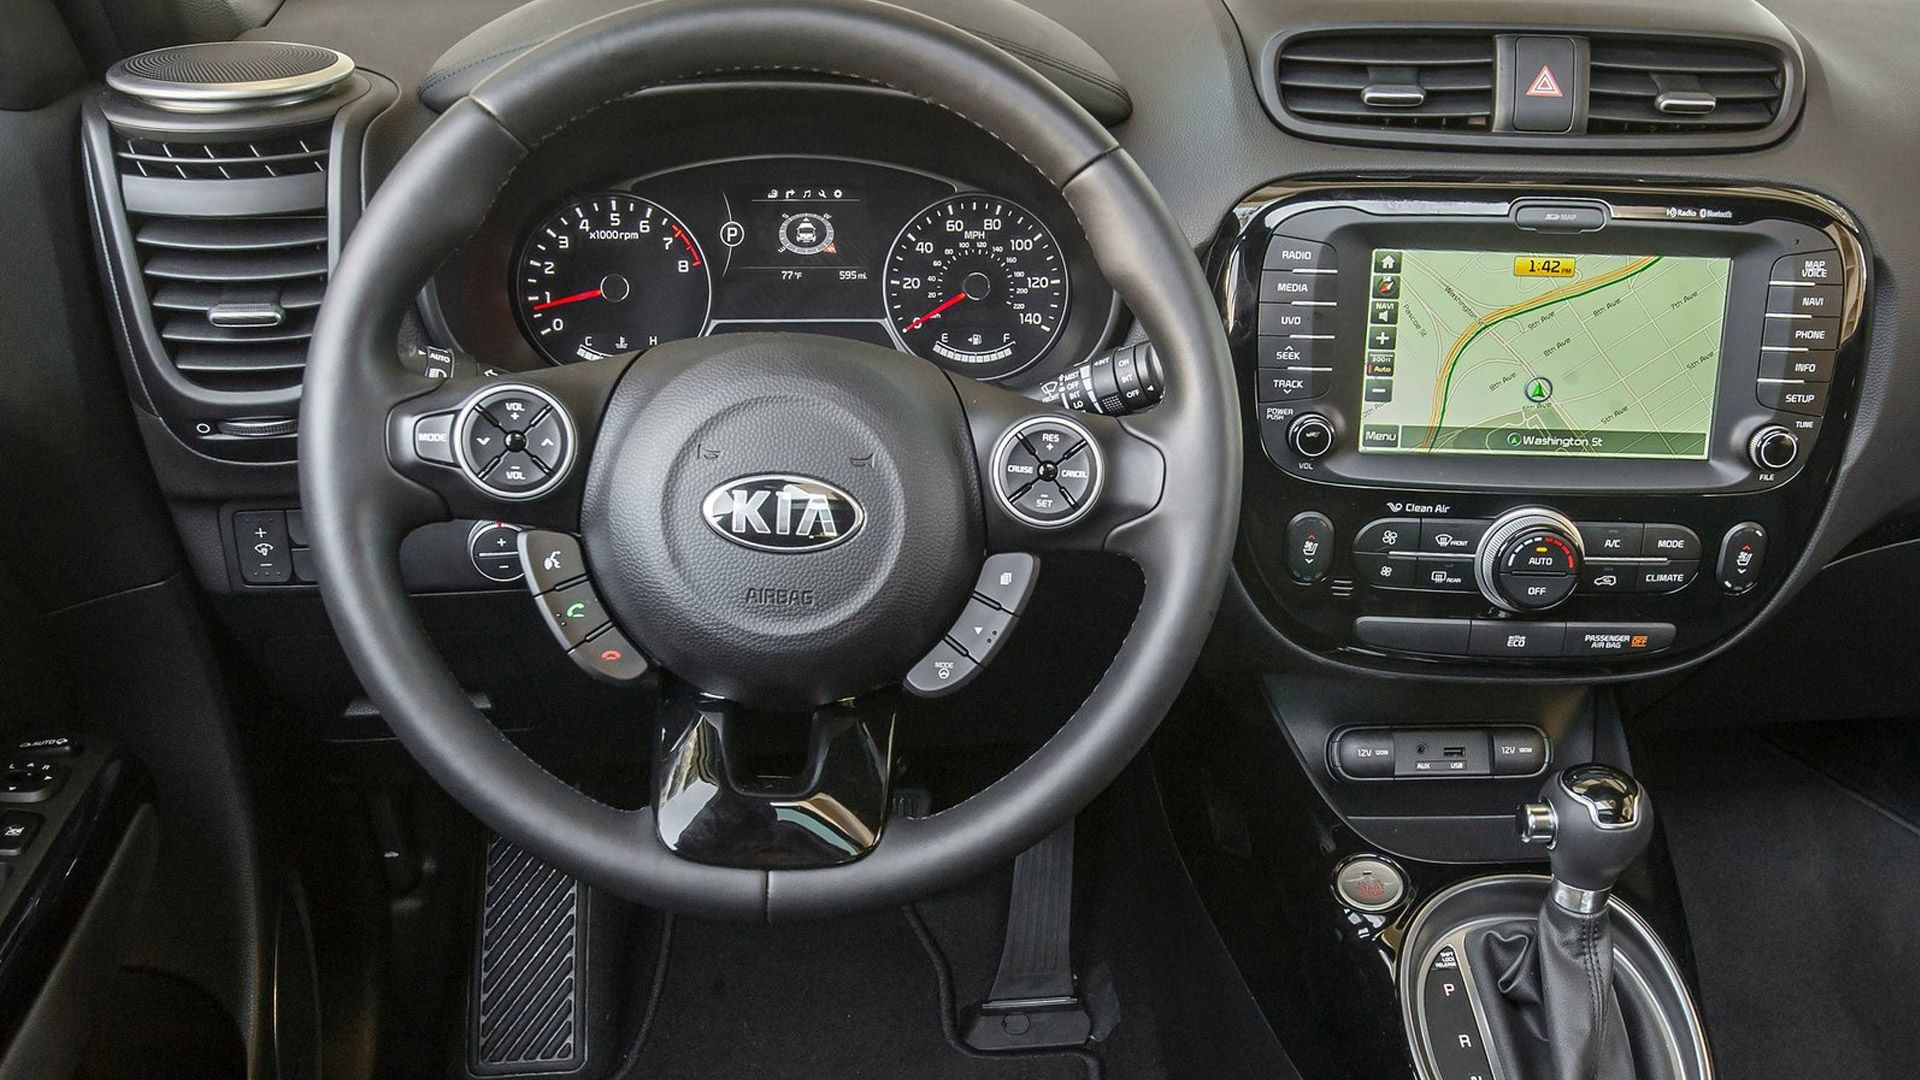 2014 Kia Soul Display 2014 Kia Soul Model